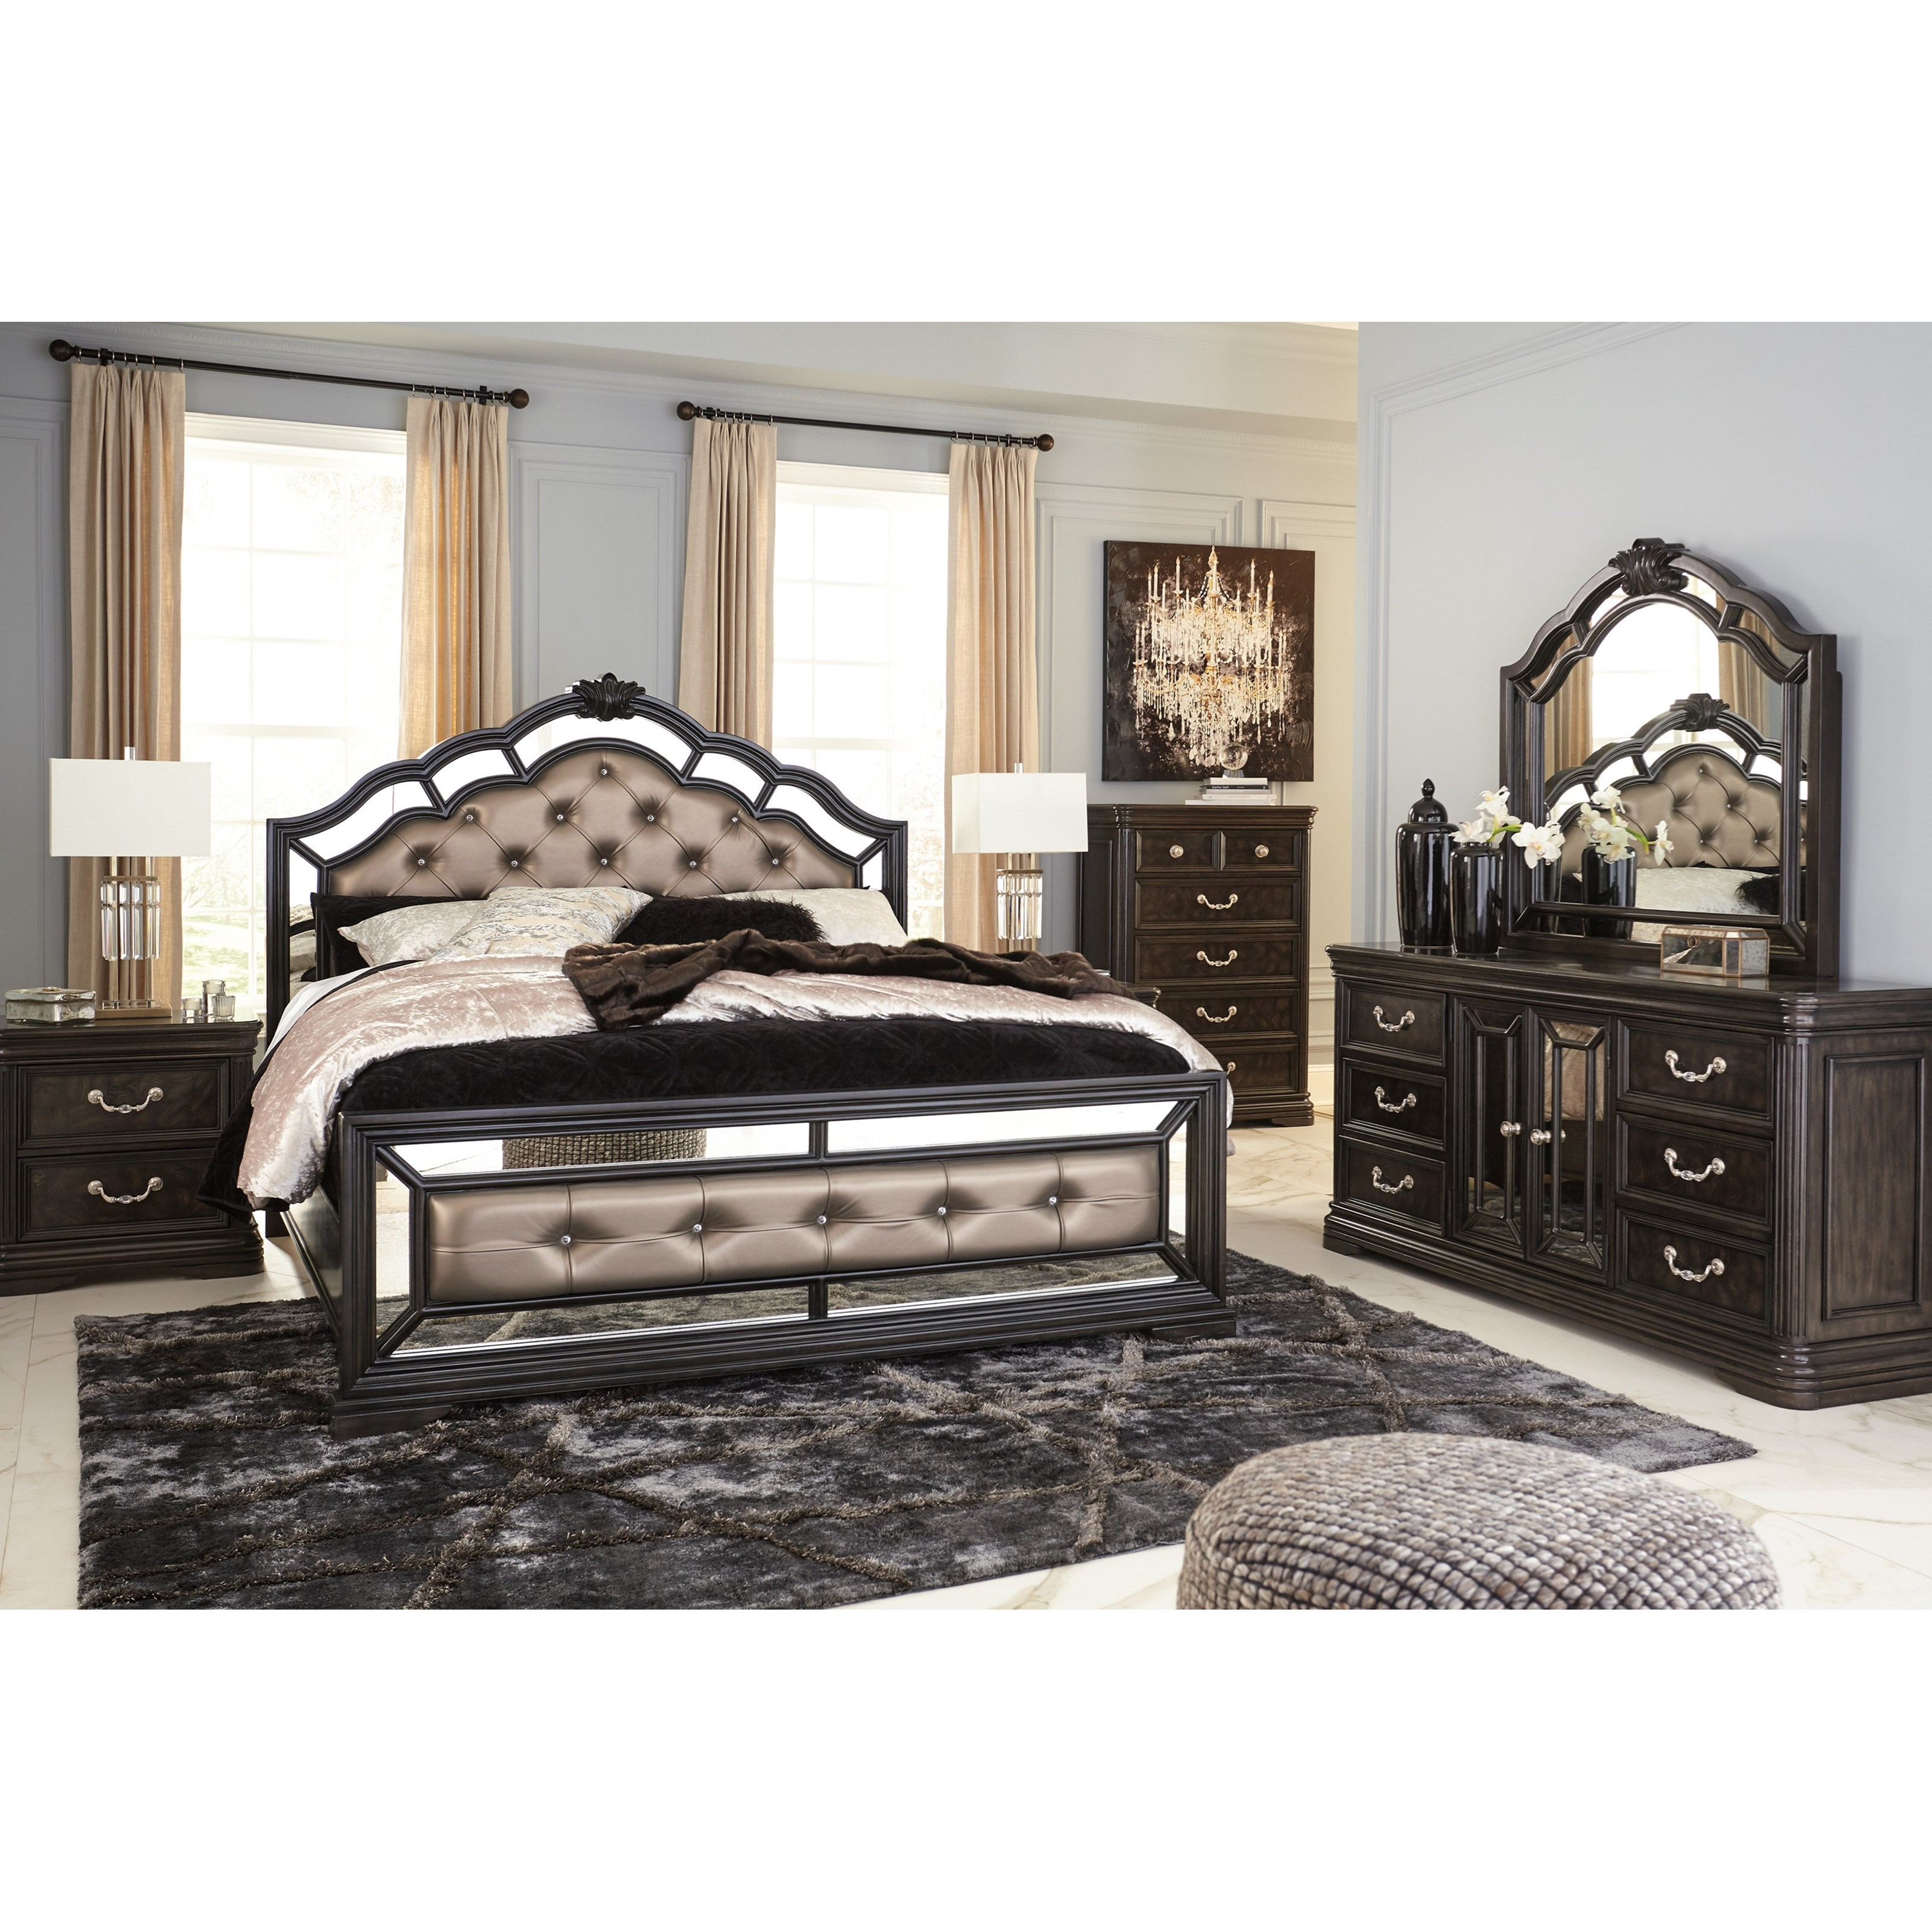 signature design by ashley quinshire queen bedroom group royal furniture bedroom groups. Black Bedroom Furniture Sets. Home Design Ideas